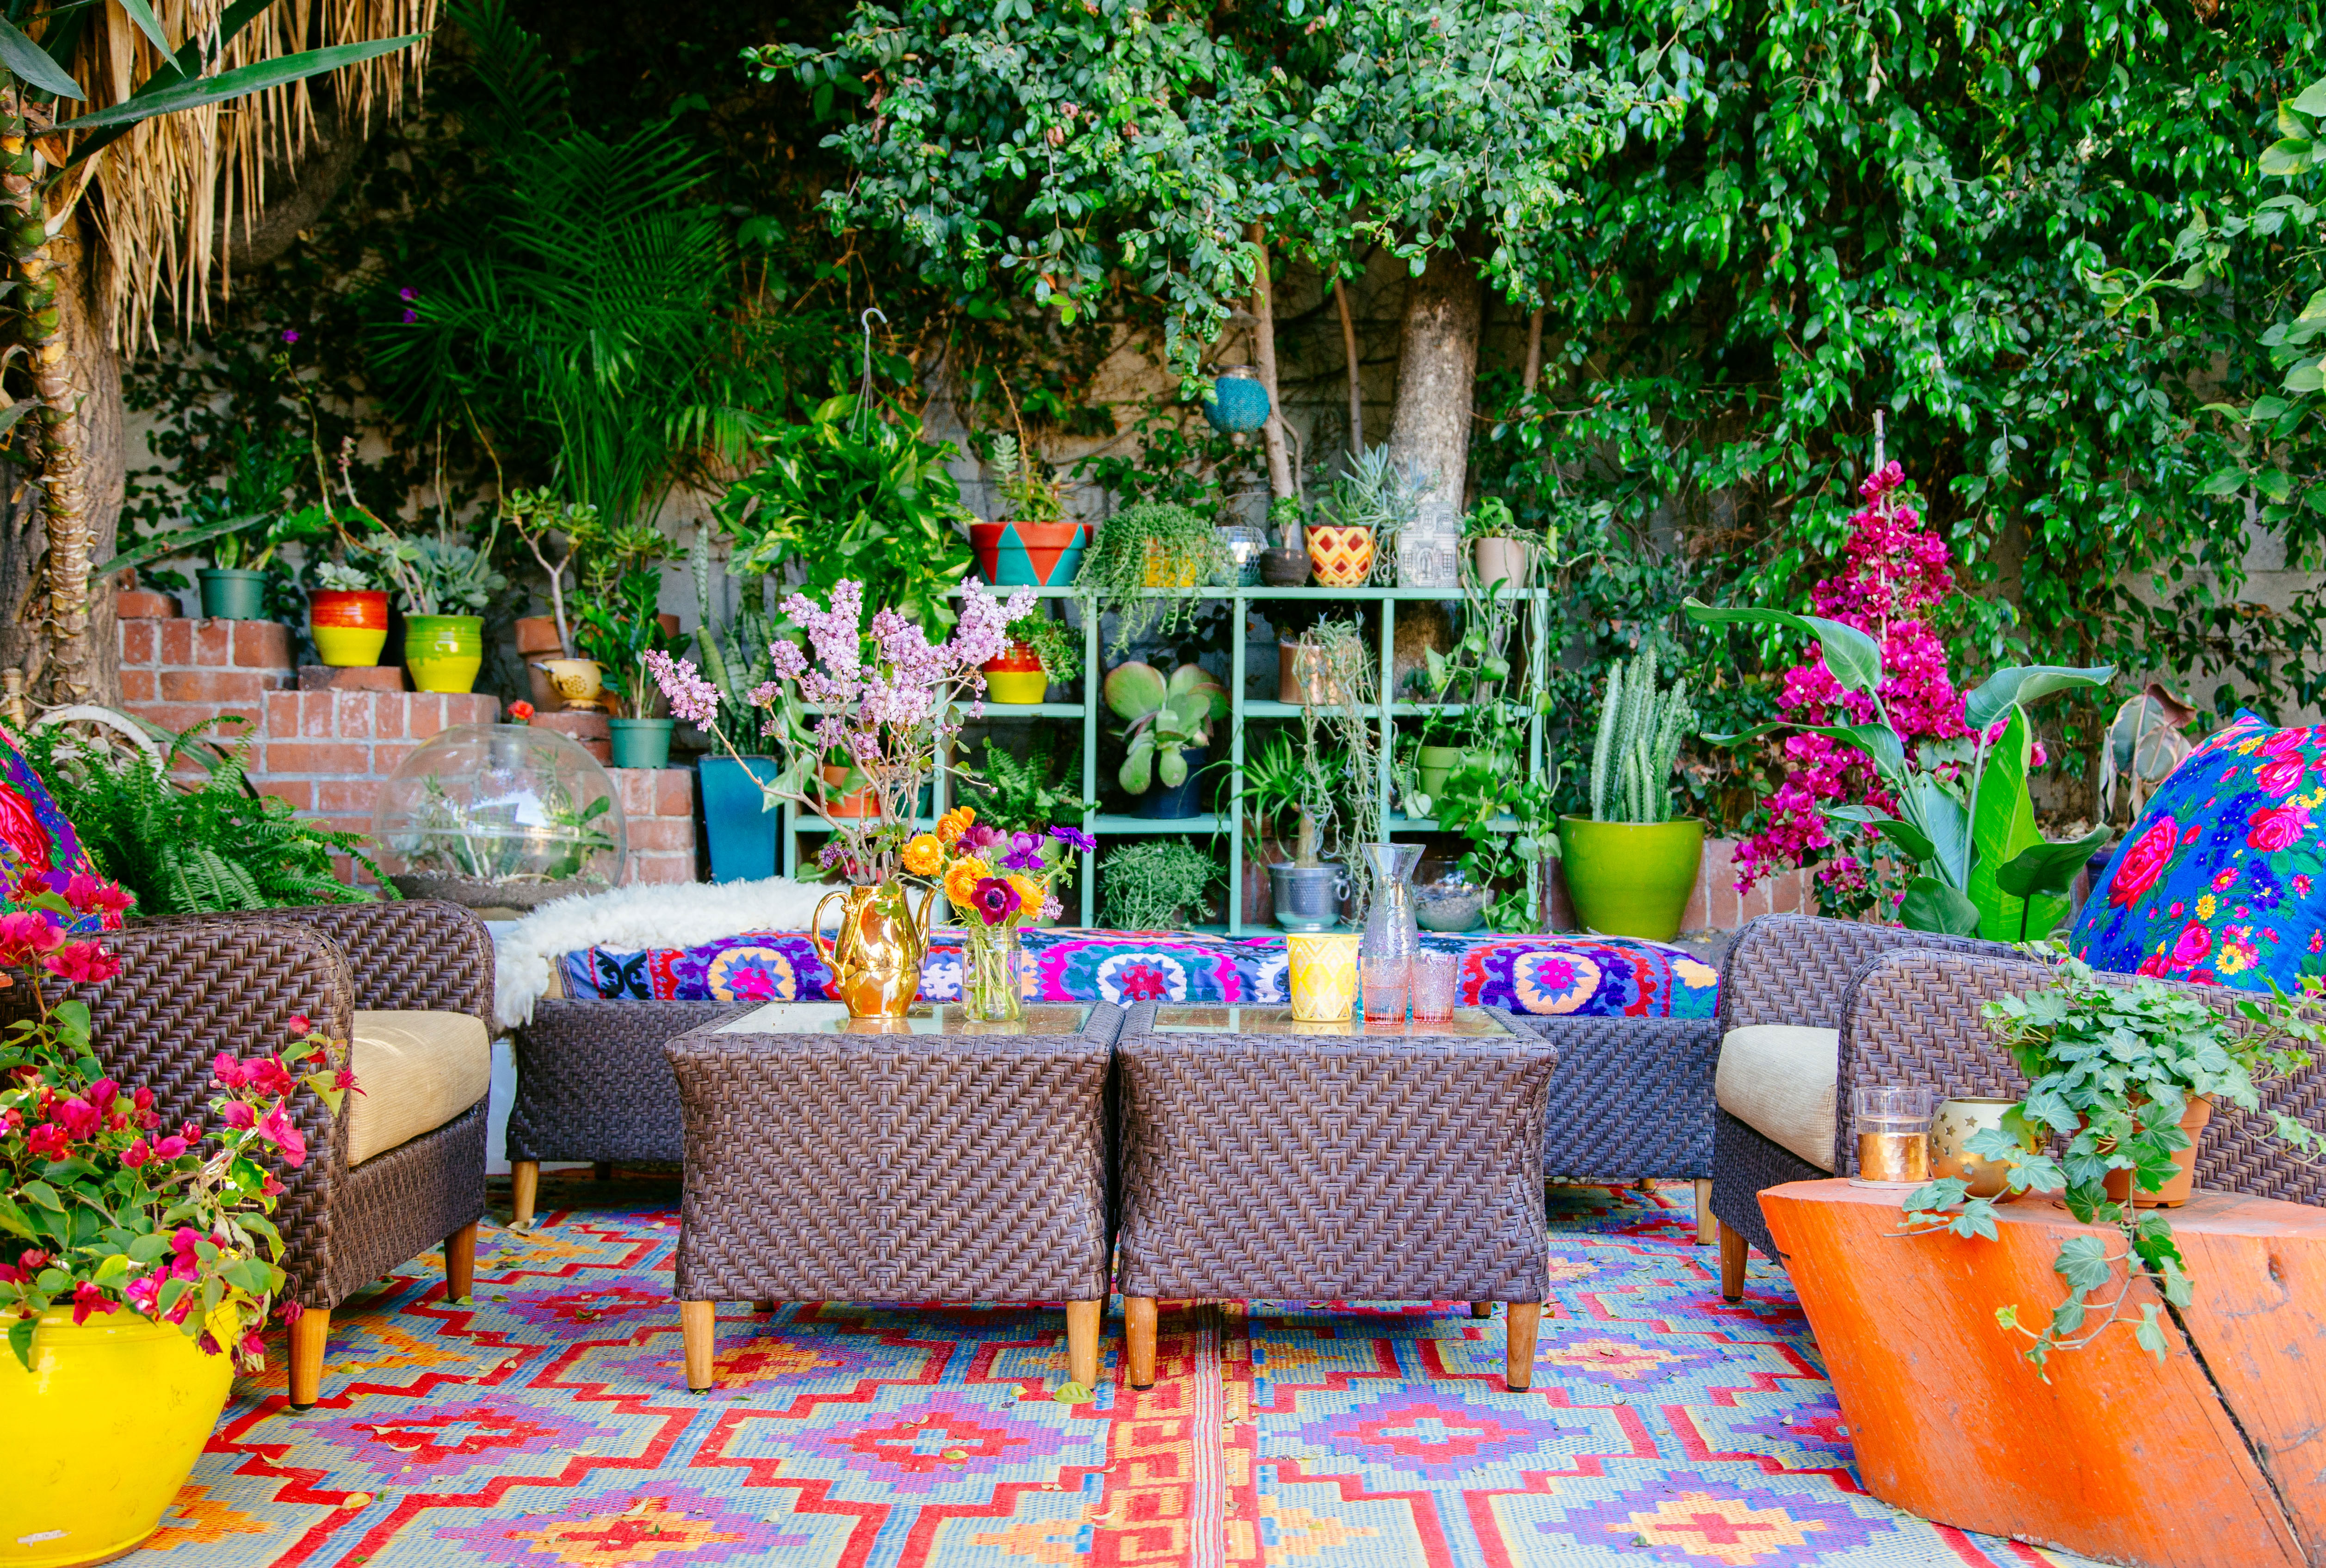 room makeover diy before making carpet friendly gallery outdoor our this reveal rugs after budget rug of decks the living deck for lemonade best resort check and inspired out